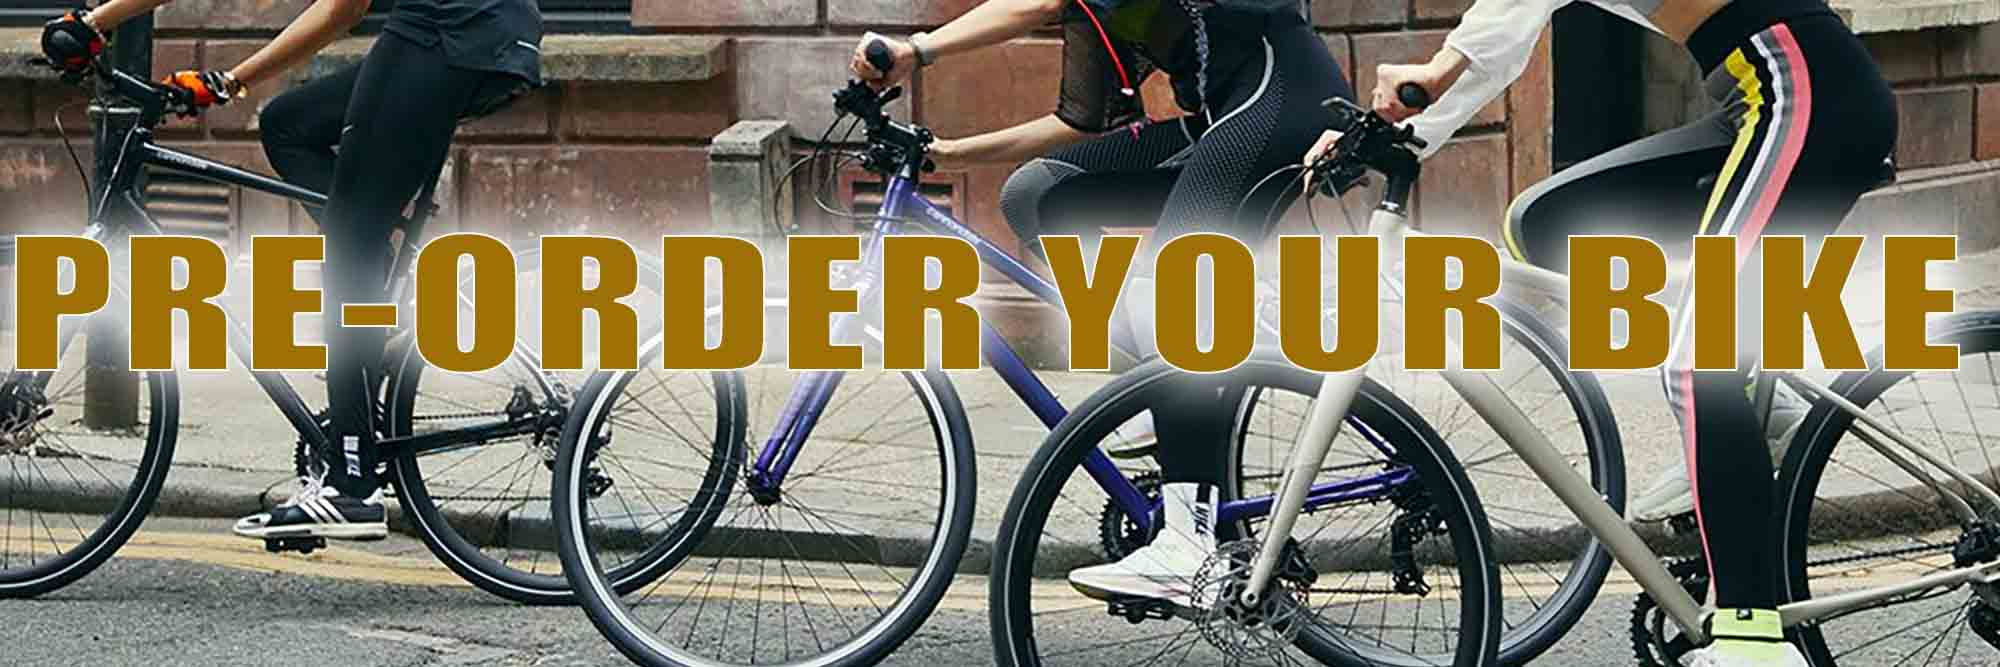 Pre-Order Your New Bike